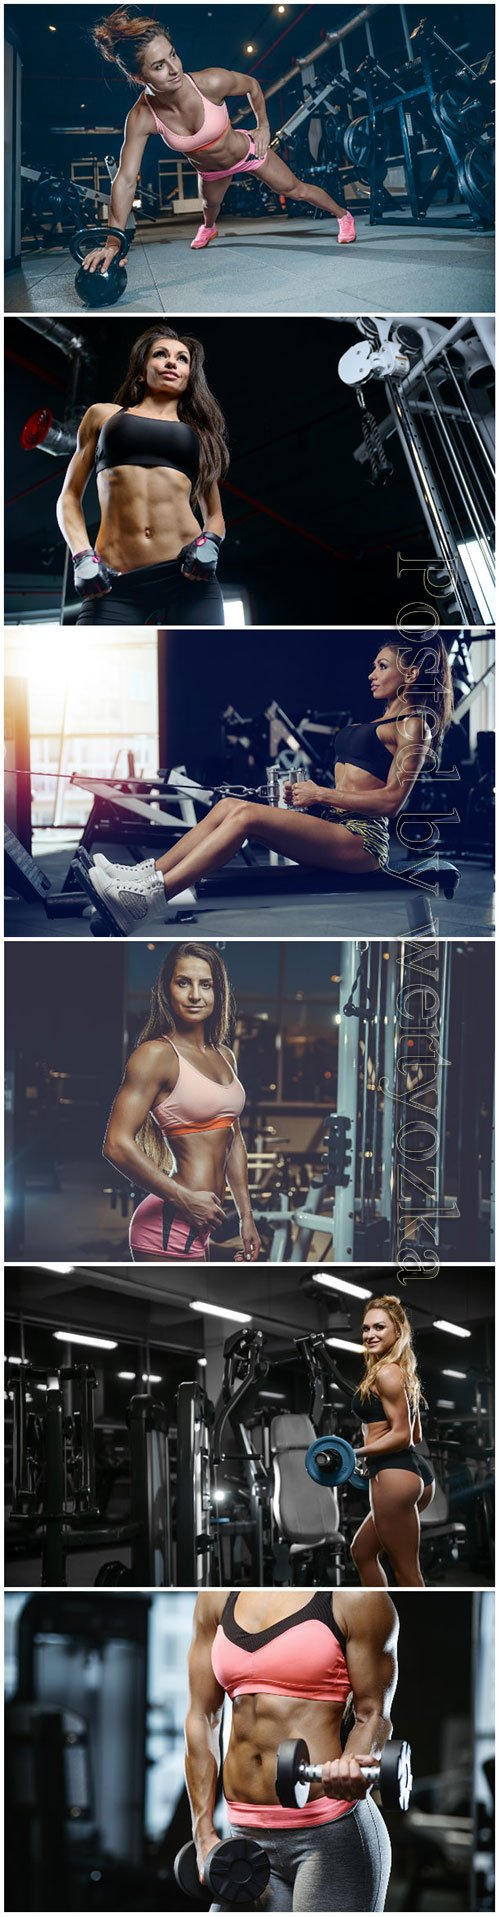 Beautiful girls in the gym